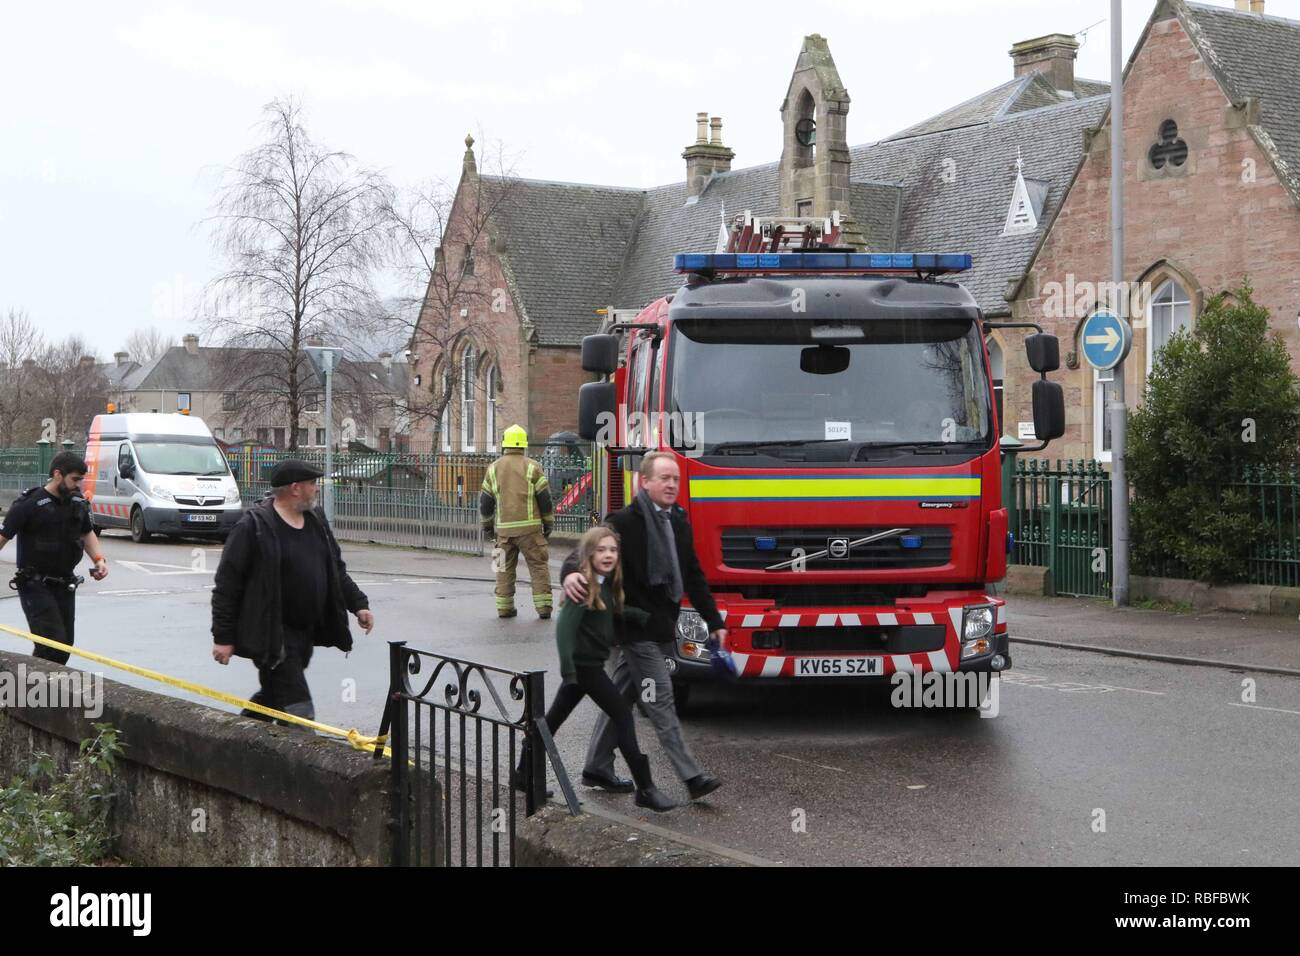 Inverness, Scotland, UK. 10 January 2019: Merkinch Primary School in Inverness was evacuated following reports of a gas leak. Children were evacuated to the nearby Saint Michael episcopal church. Picture: Andrew Smith Credit: Andrew Smith/Alamy Live News - Stock Image